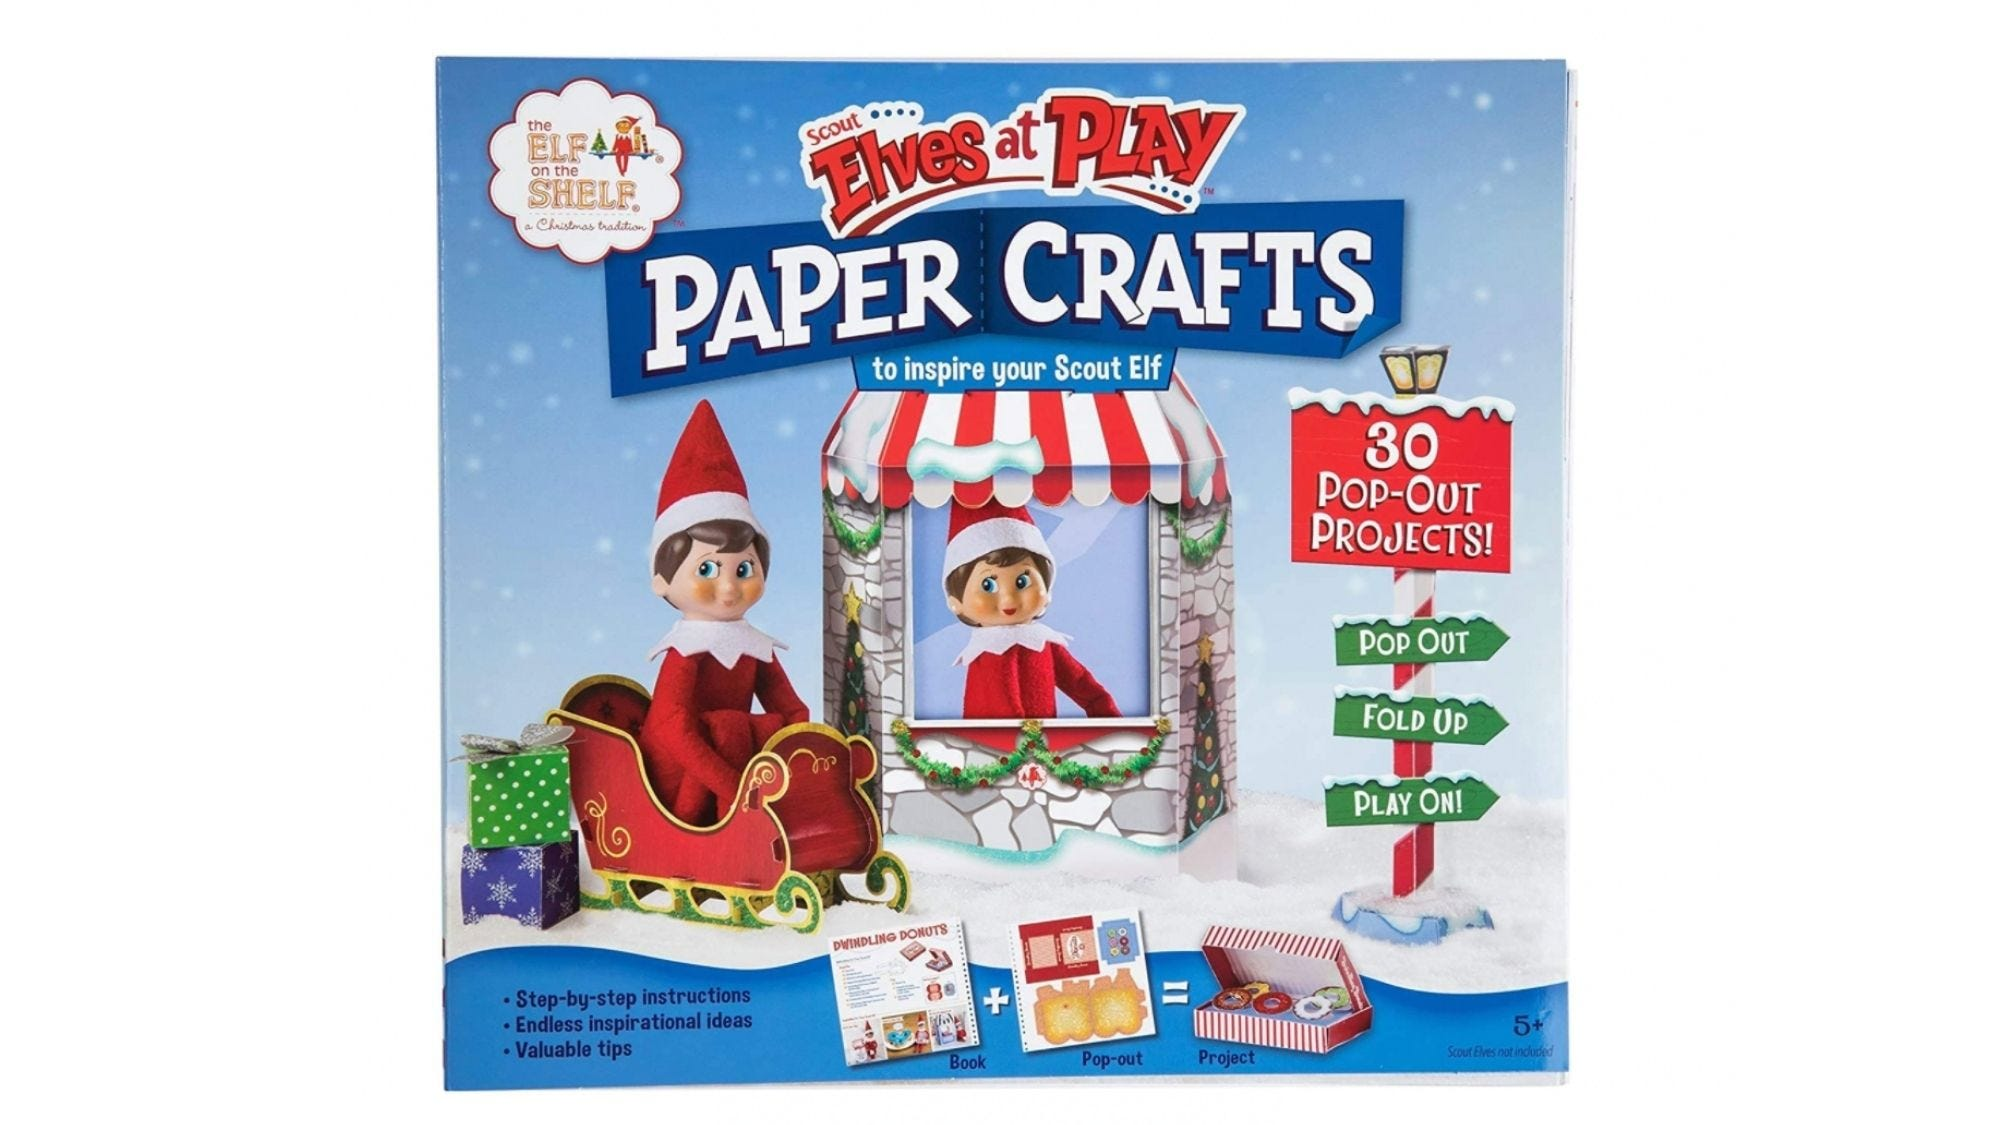 This kit is filled with fun and foldable pop-out props.